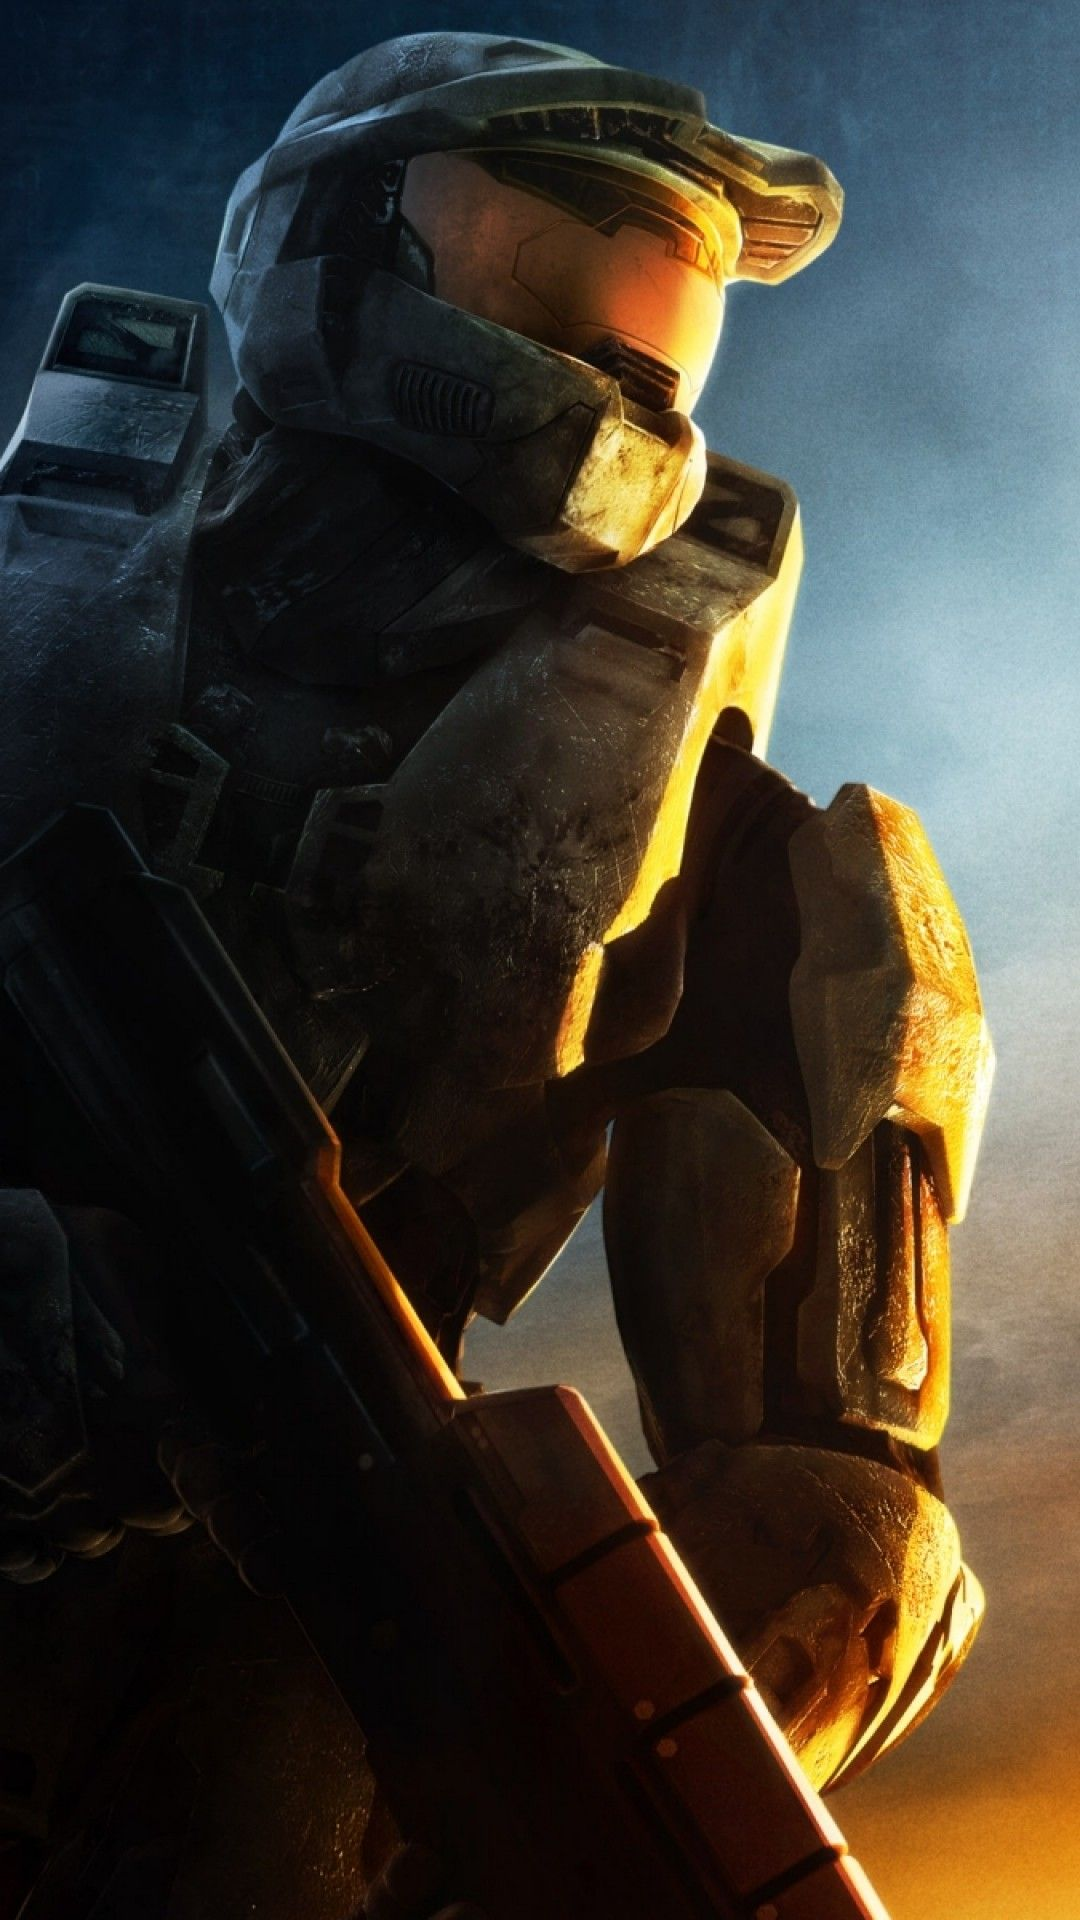 Pin By Wallpapers Ideas On Video Games Halo Backgrounds Background Pictures Best Background Images